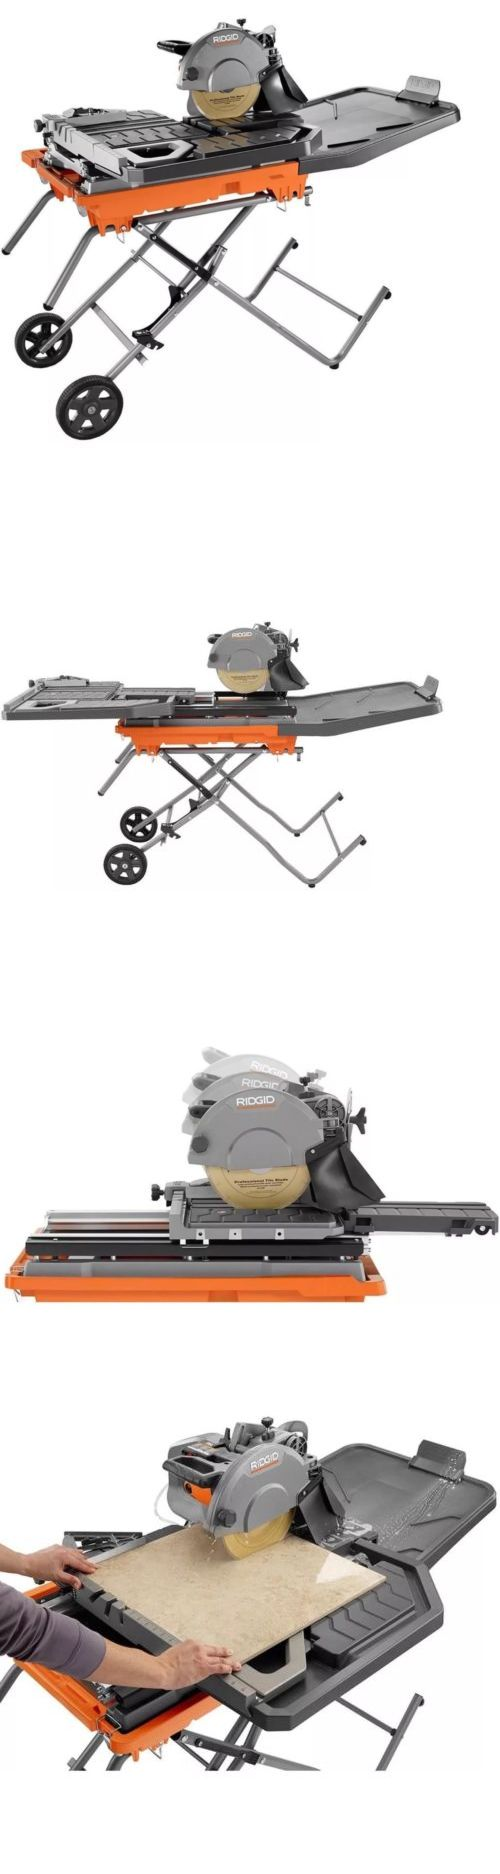 Tile Saws 122836 Ridgid Beast 10 In Wet Tile Saw With Stand Buy It Now Only 925 On Ebay Ridgid Beast Stand With Images Tile Saw Tile Saws Tiles